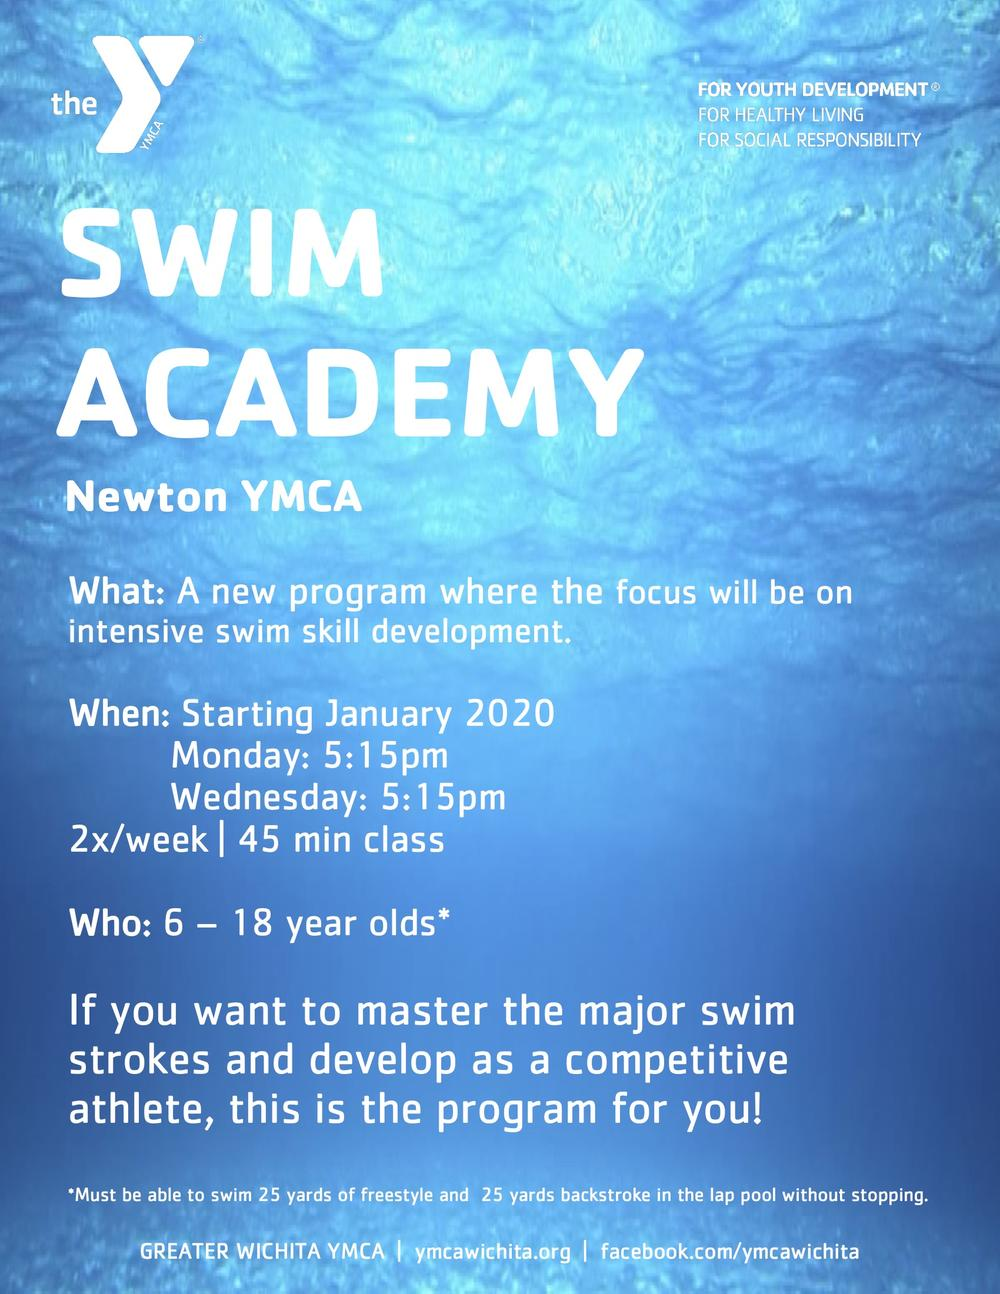 YMCA Swim Academy